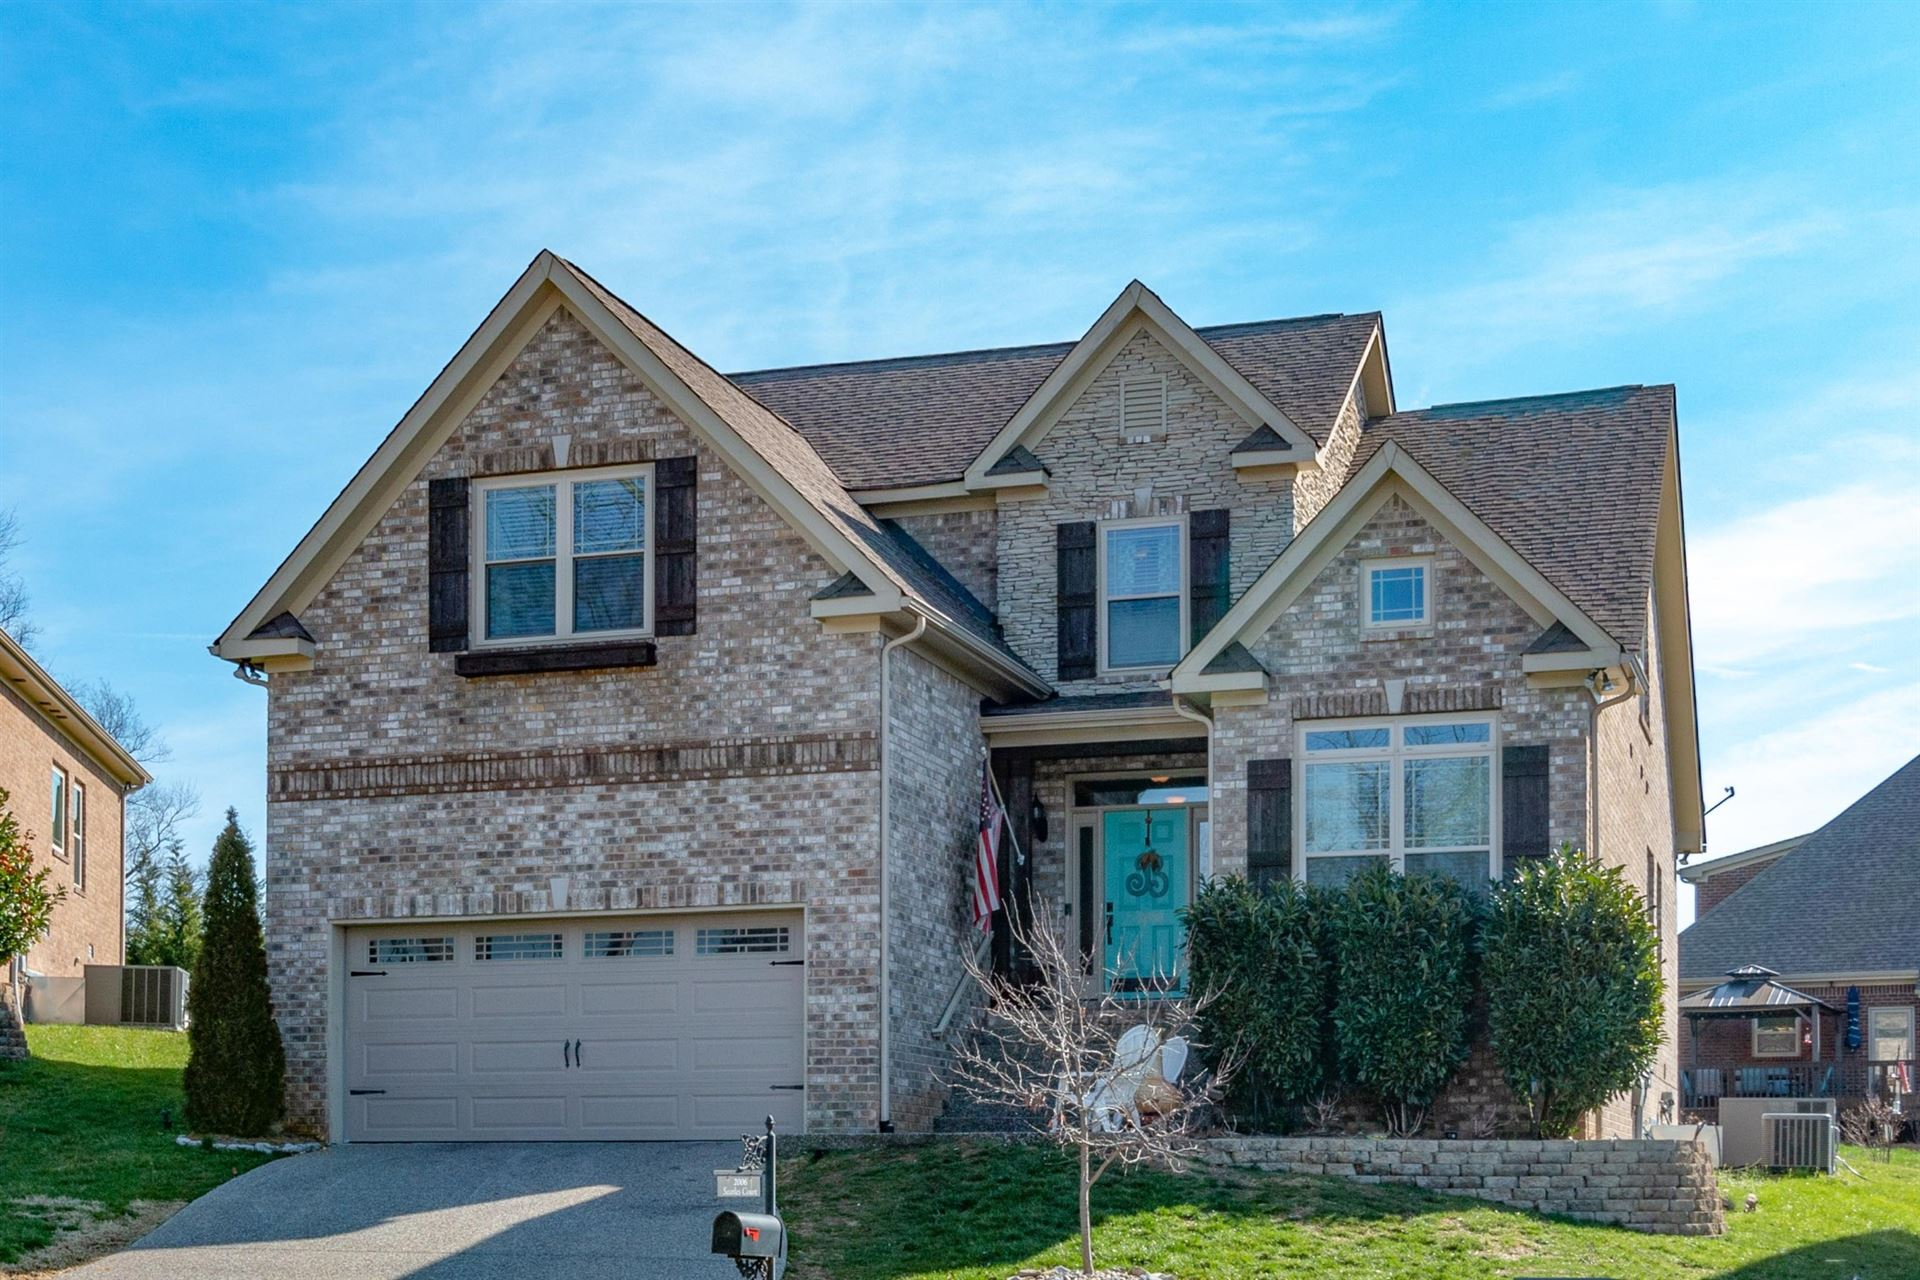 Photo of 2006 Searles Ct, Spring Hill, TN 37174 (MLS # 2124547)